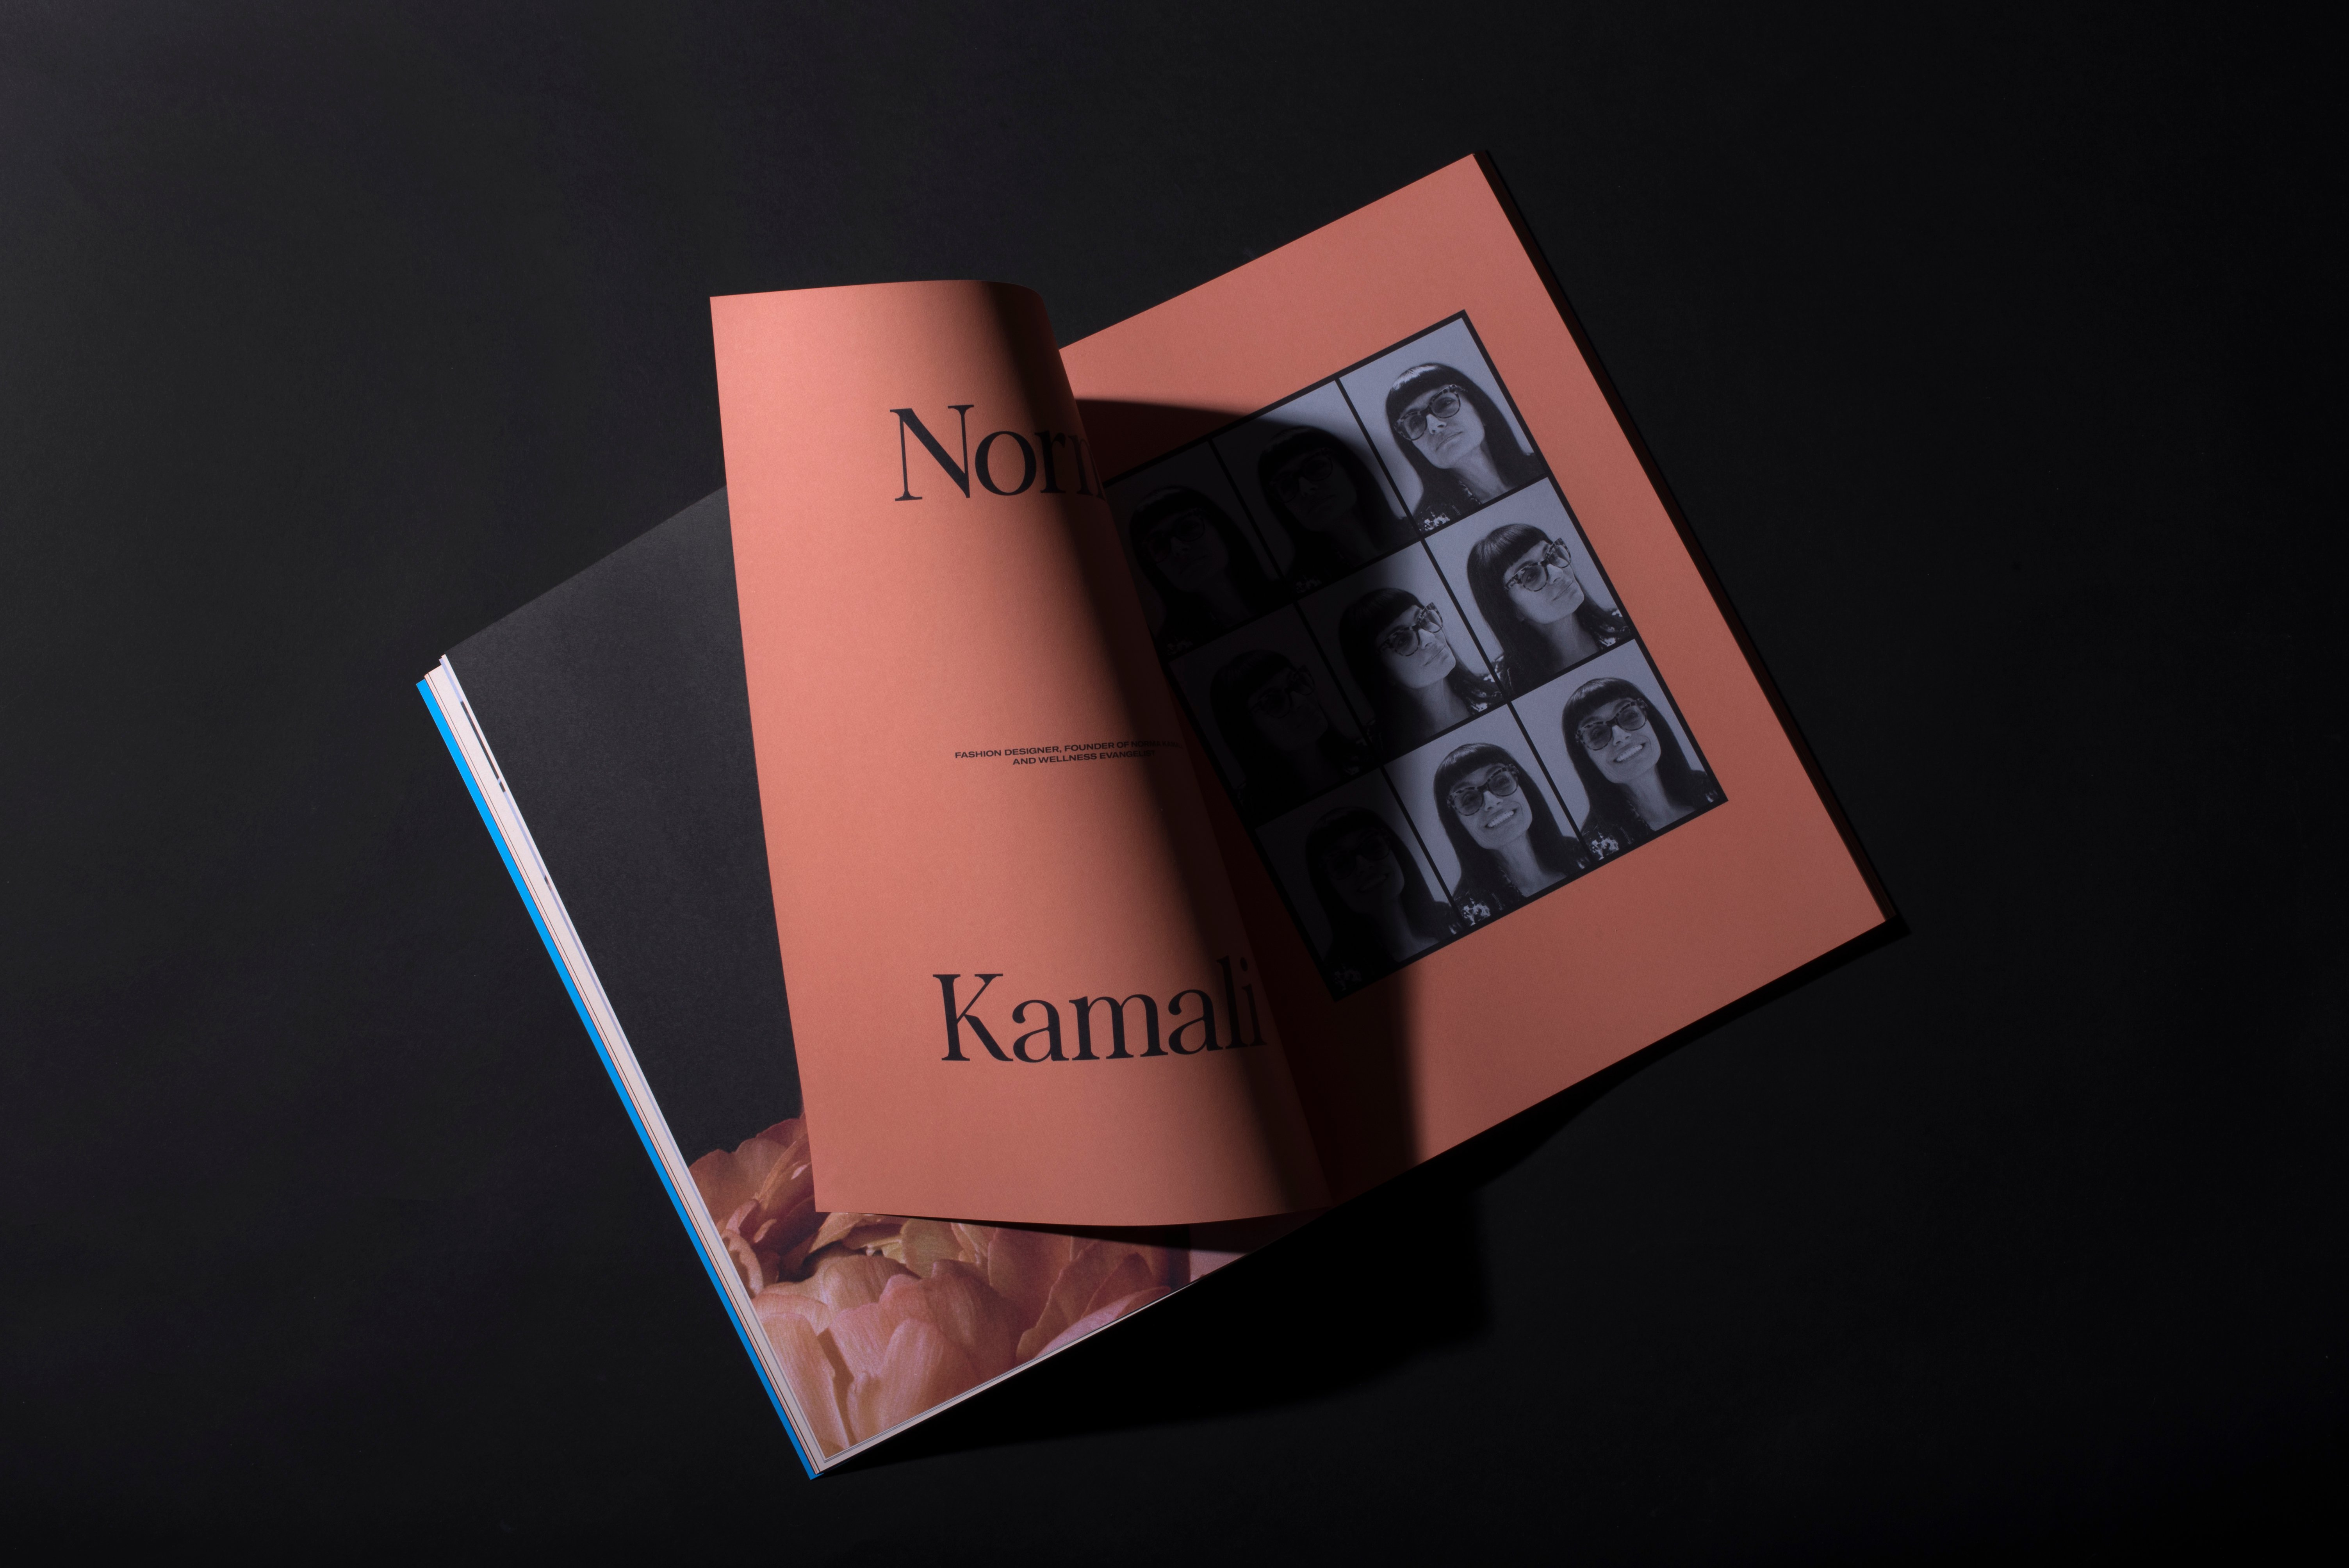 Romance Journal Issue 01 – Norma Kamali interior spread. Publication design, art direction, print design, interviews by RoAndCo.